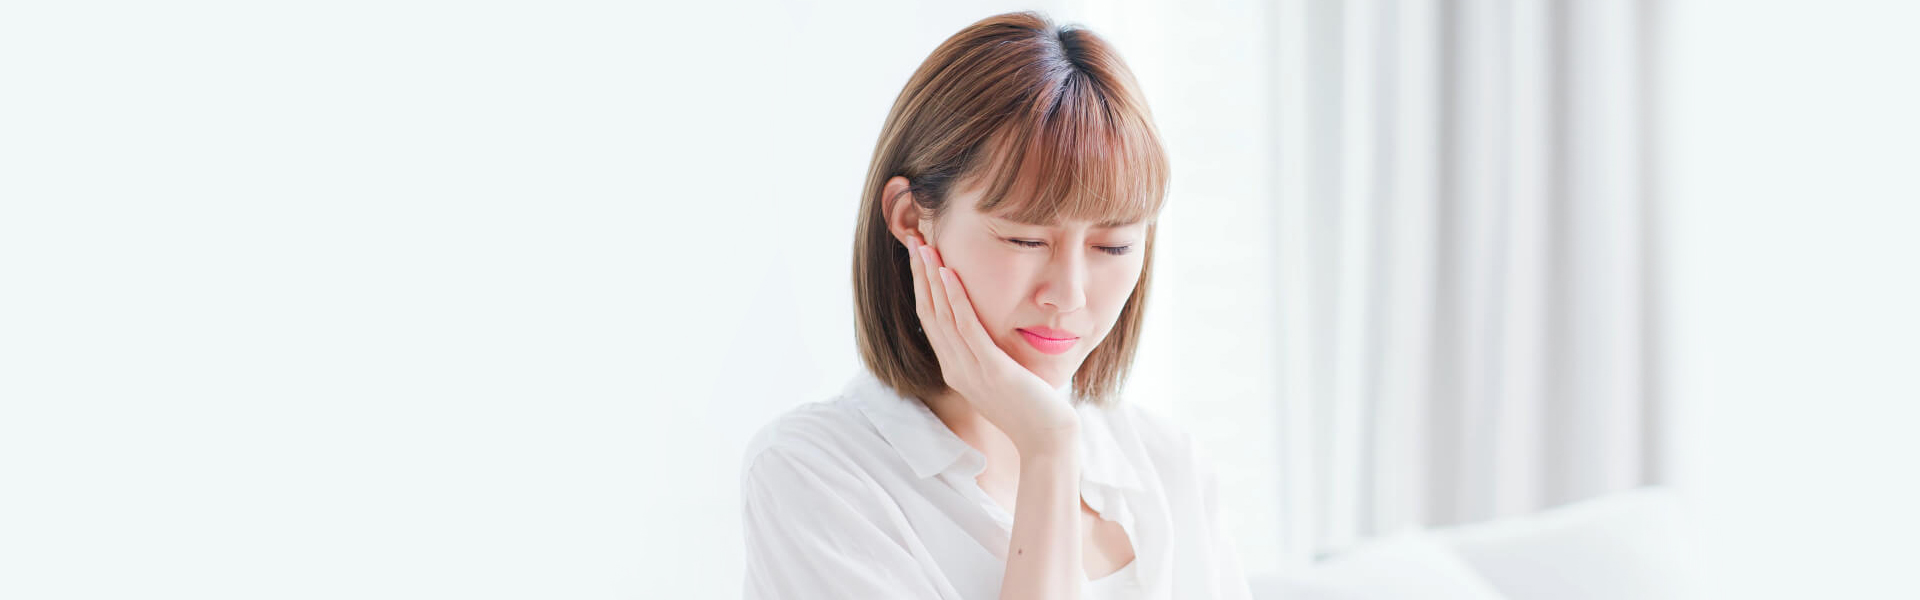 Dental Emergency Tips from a Trusted Emergency Dental Practice